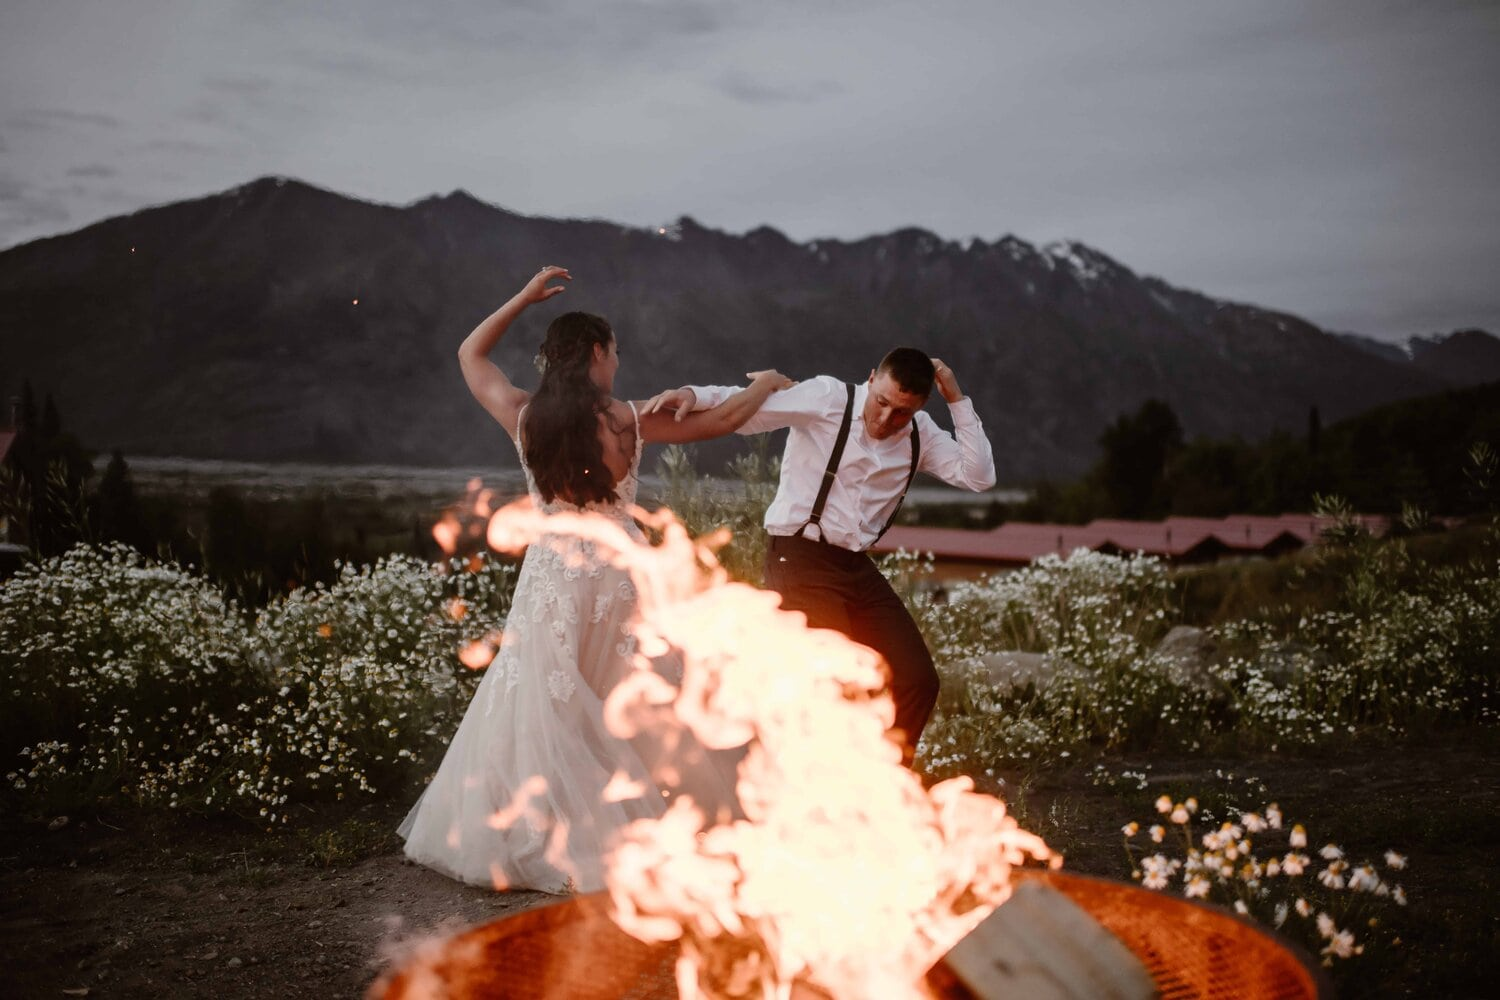 A bride and groom dance in front of a fire while the sun is setting.